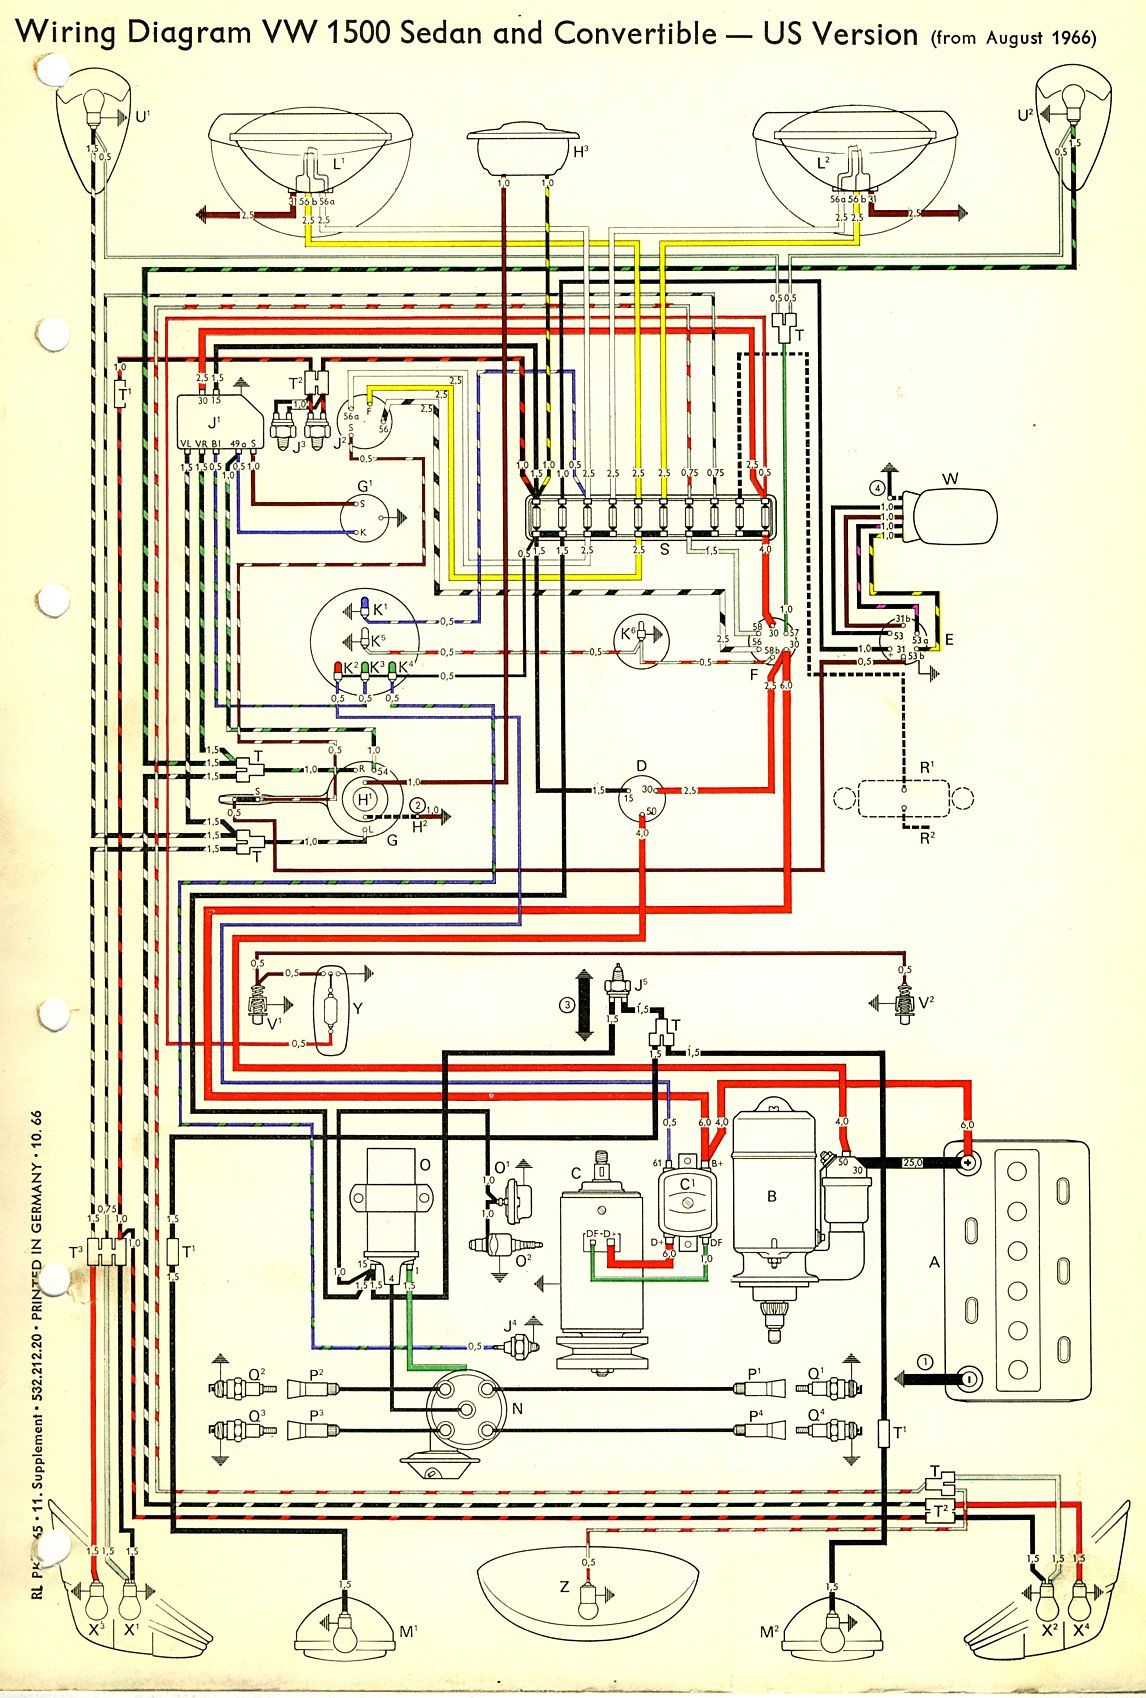 1adf990c0efb617c789fdd21338448b0 1967 beetle wiring diagram (usa) thegoldenbug com best 1967 vw 1969 bug wiring diagram at creativeand.co